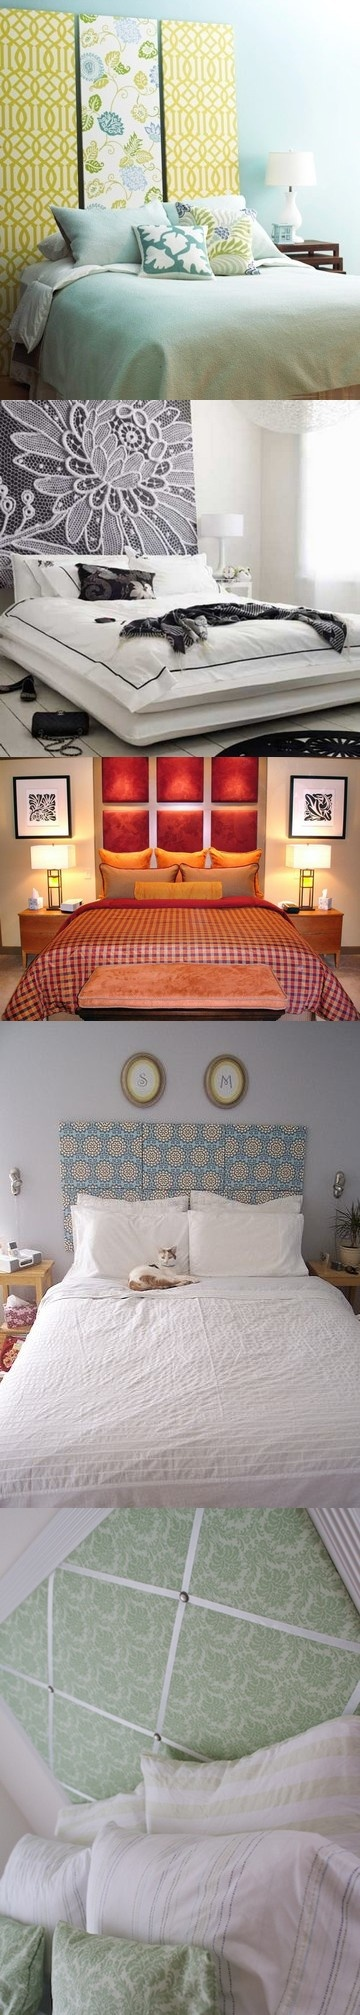 Wrapped Canvas Headboards. Super easy headboard idea. Stretch fabric of your choosing over canvas, nail to headboard, then nail the headboard(s) to the wall. You can do a bunch of squares (interchanging different patterns, or the same to imitate a cushioned look) or 2 or 3 long pieces. You can even take it further and print letters over the fabric, or stretch lace over your pattern for a 3D look. Have fun with it! Super easy, super cheap, and very chic! :)